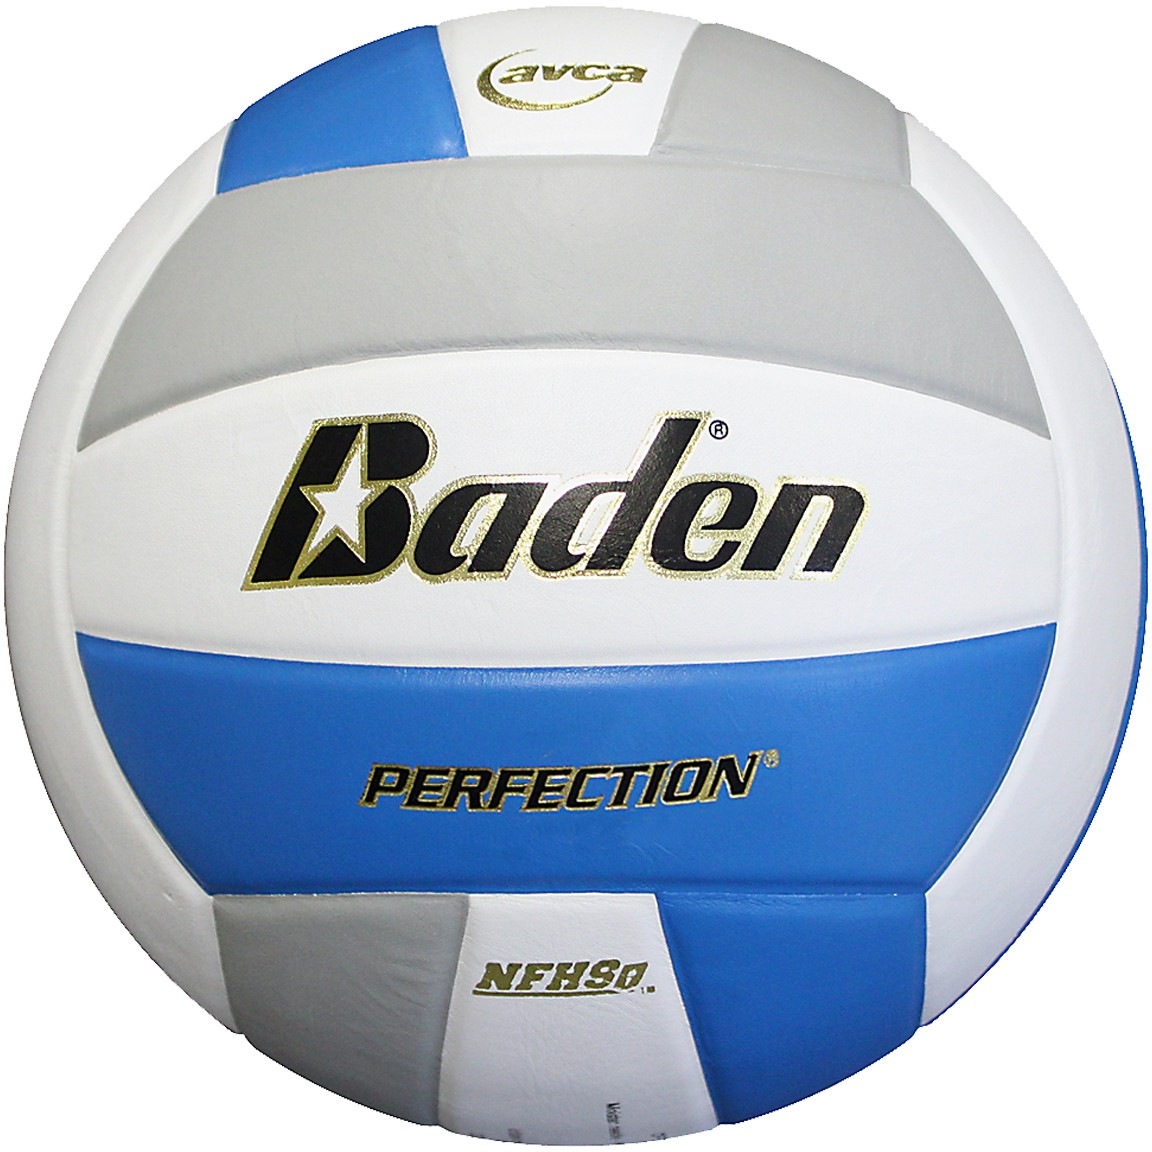 Baden Vx5e Perfection 15 0 Leather Game Volleyball Colors